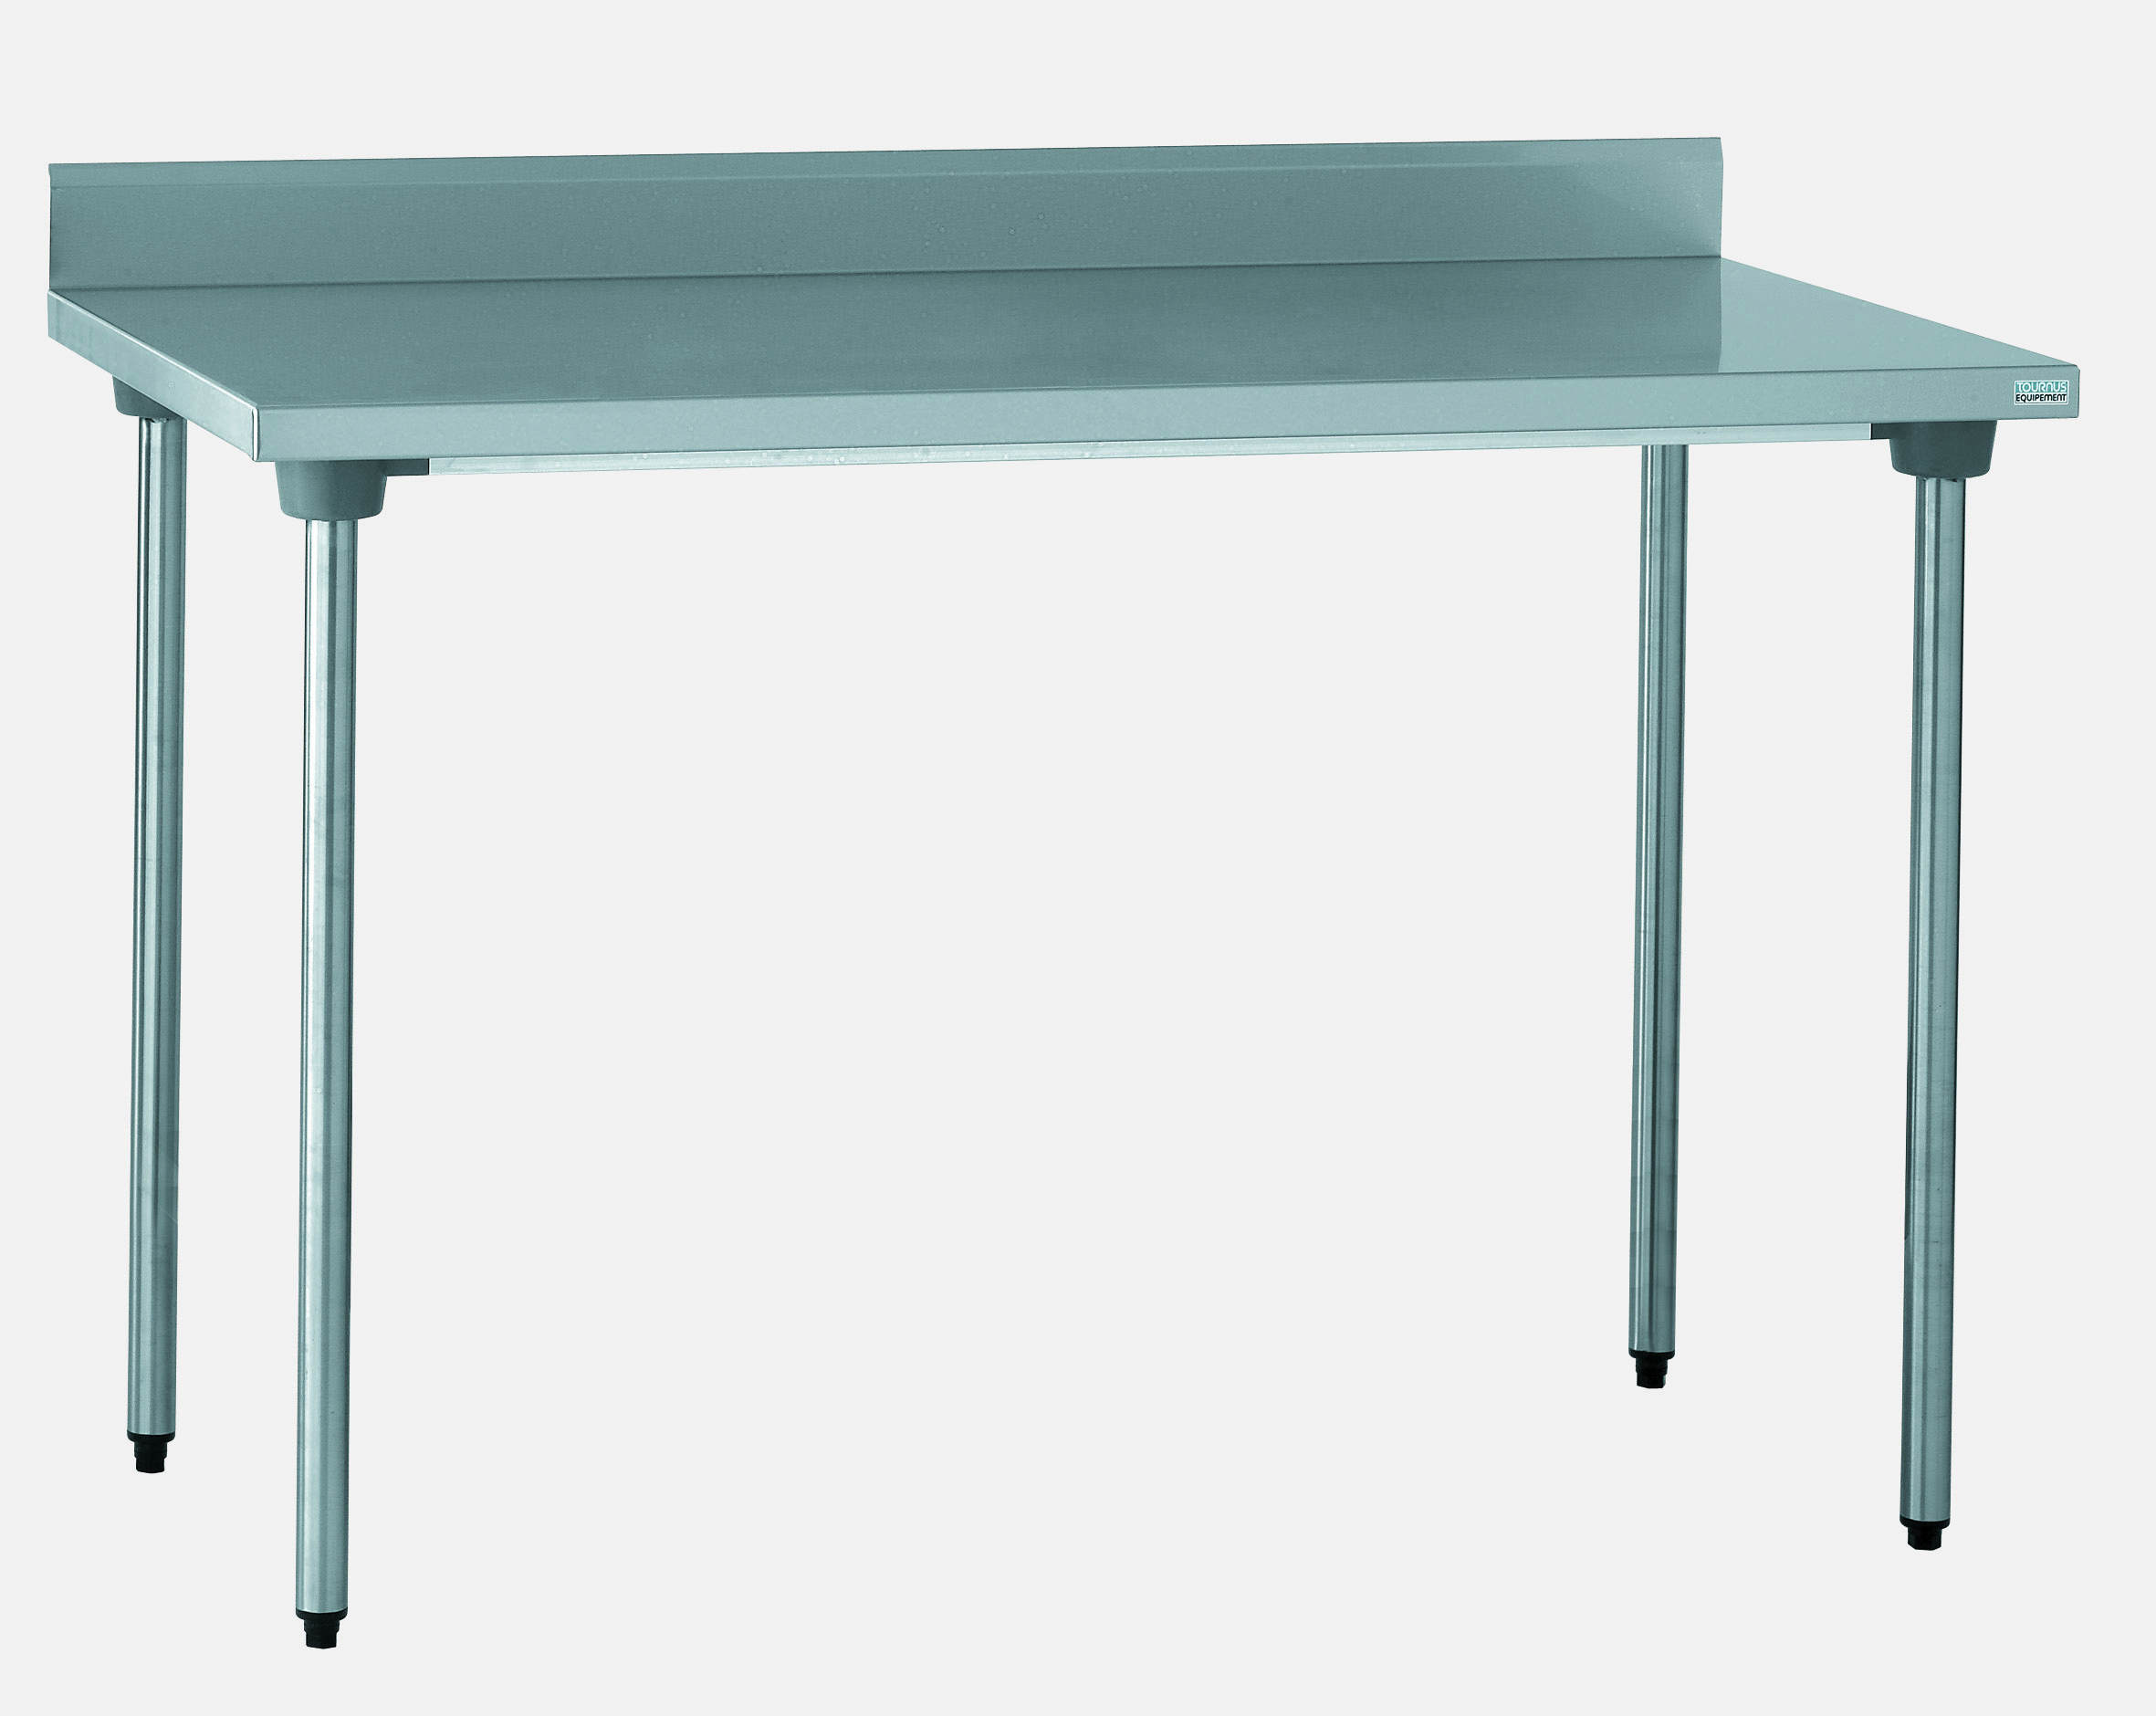 TABLE CHR ADOSSEE 700X1400